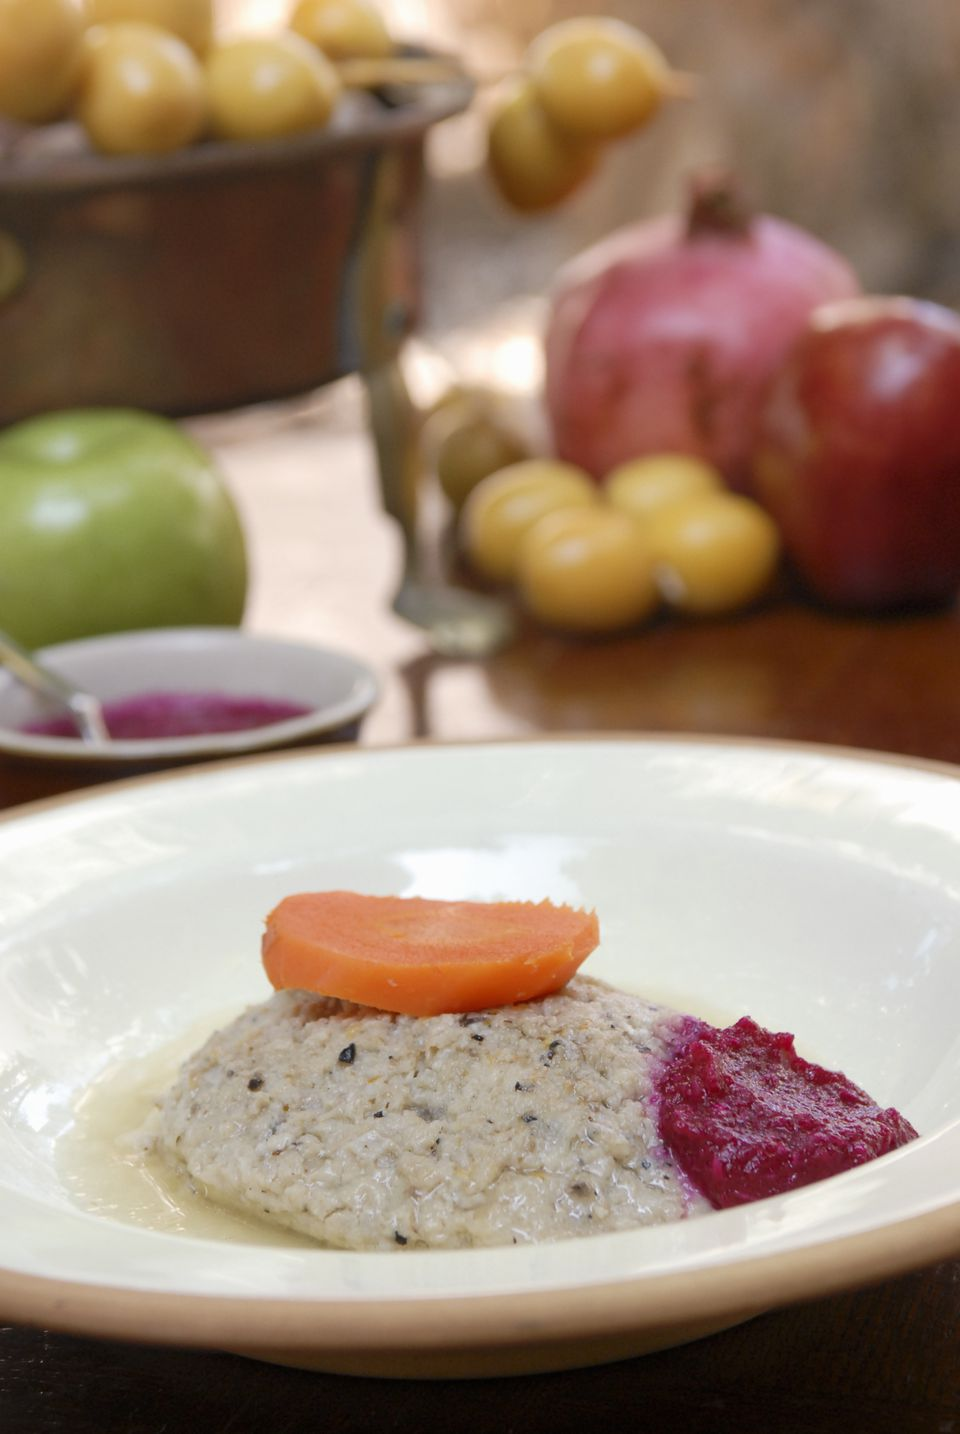 Gefilte Fish for Rosh Hashana